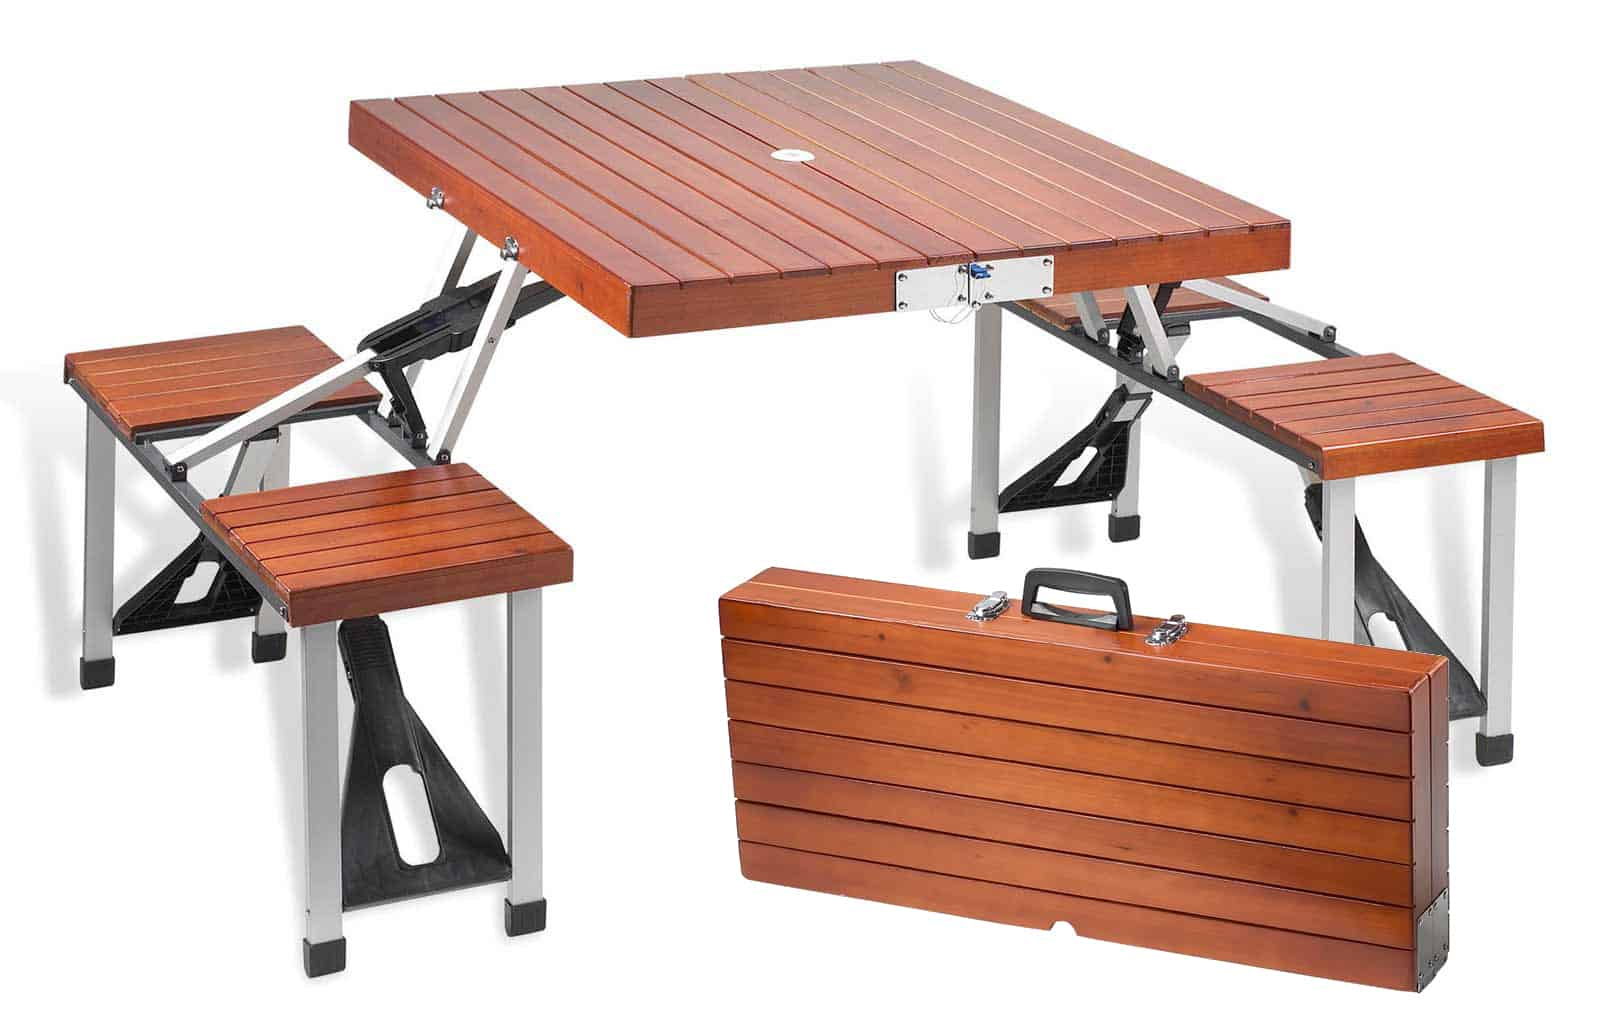 Tailgate Folding Wooden Picnic Table Unique Product